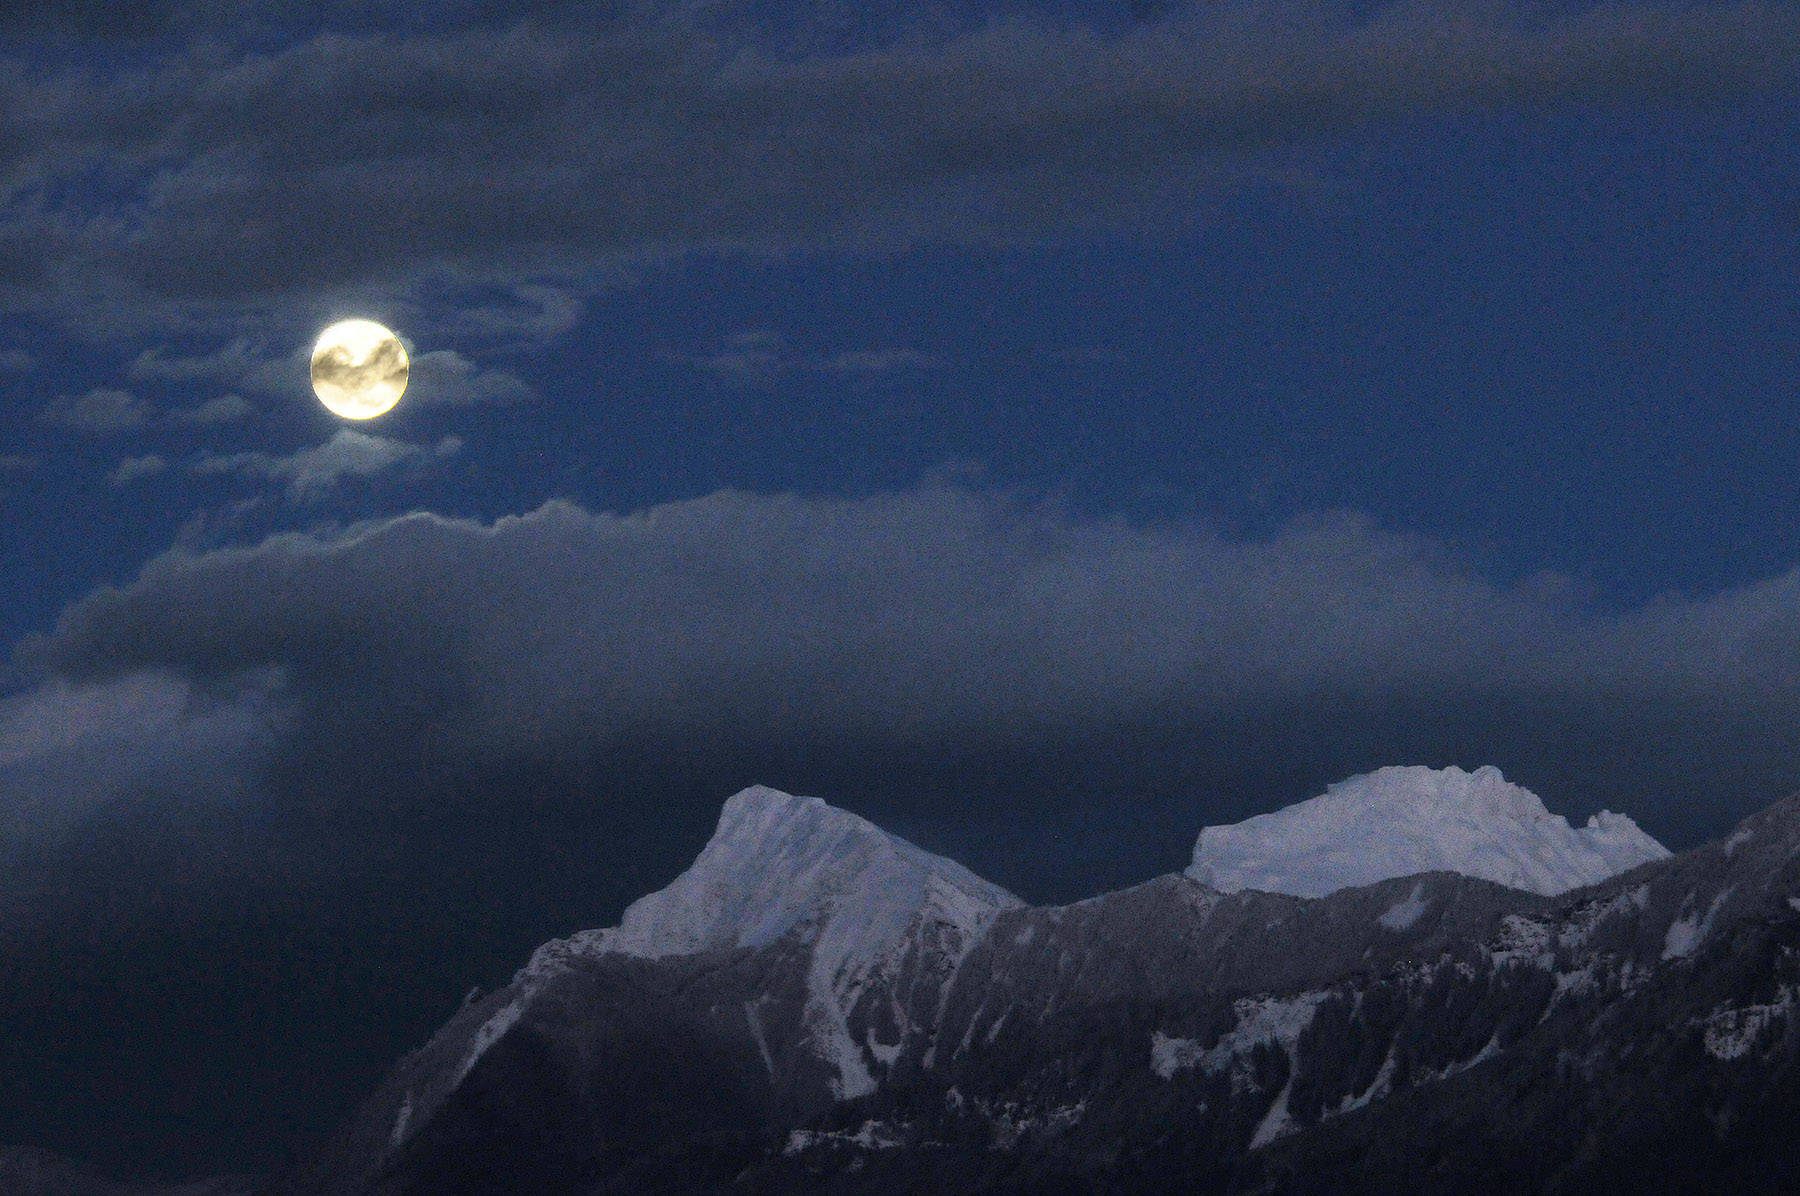 A snow moon rises over Mt. Cheam in Chilliwack on Feb. 8, 2020. Friday, Dec. 11, 2020 is Mountain Day. (Jenna Hauck/ Chilliwack Progress file)